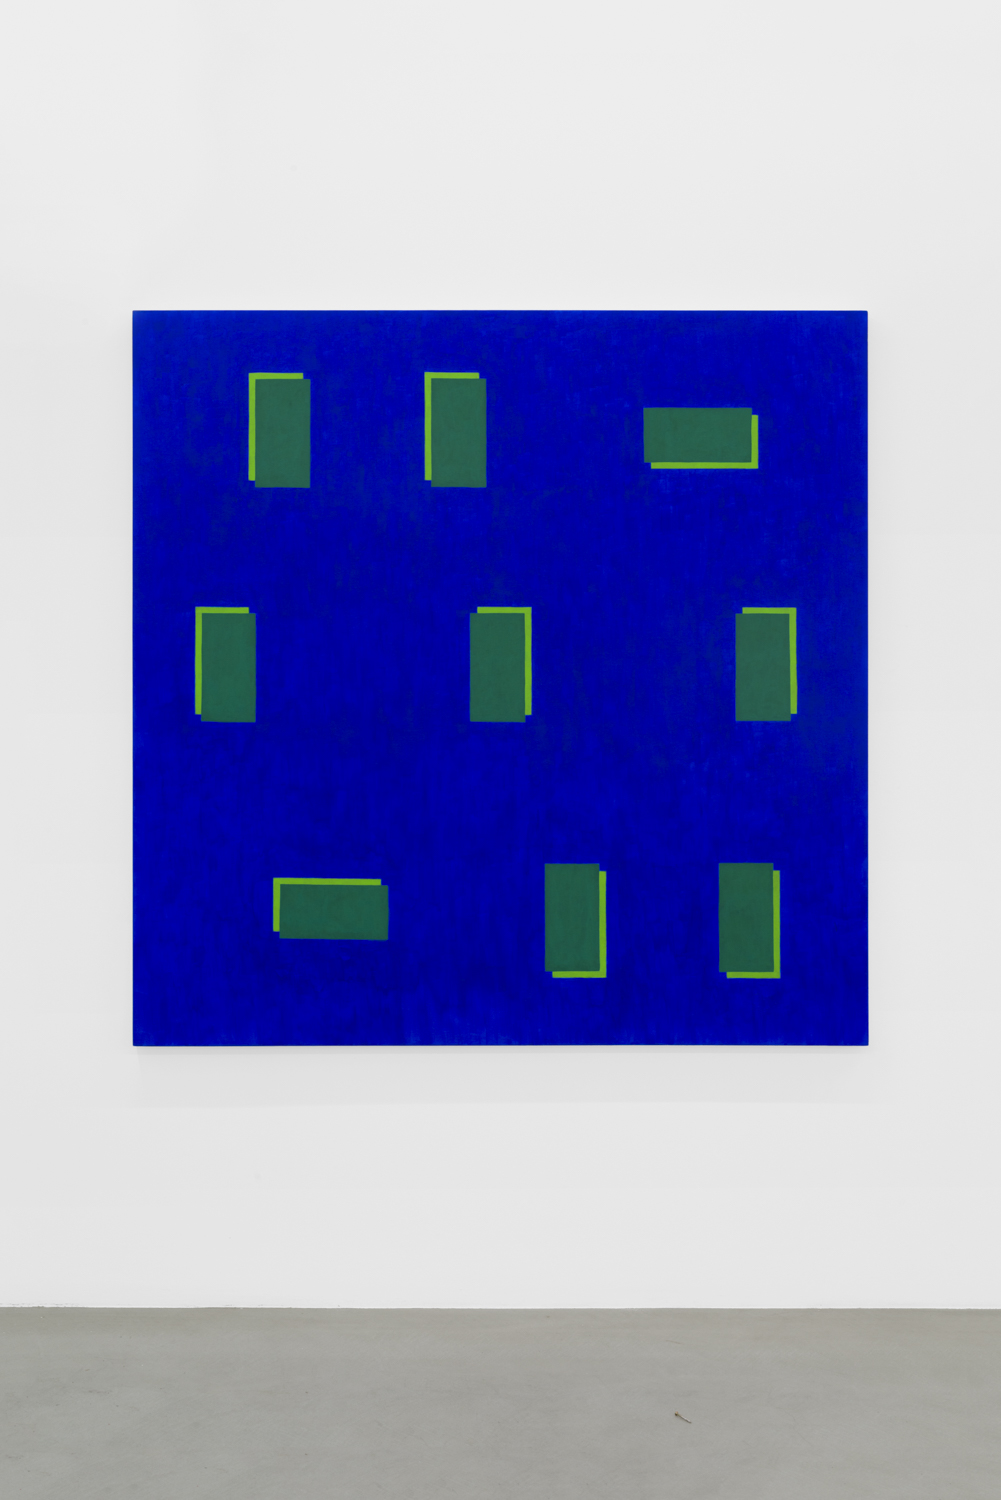 Edith Baumann  Pattern Recognition #17 , 2018 ground pigment and acrylic on canvas 69 x 69 inches